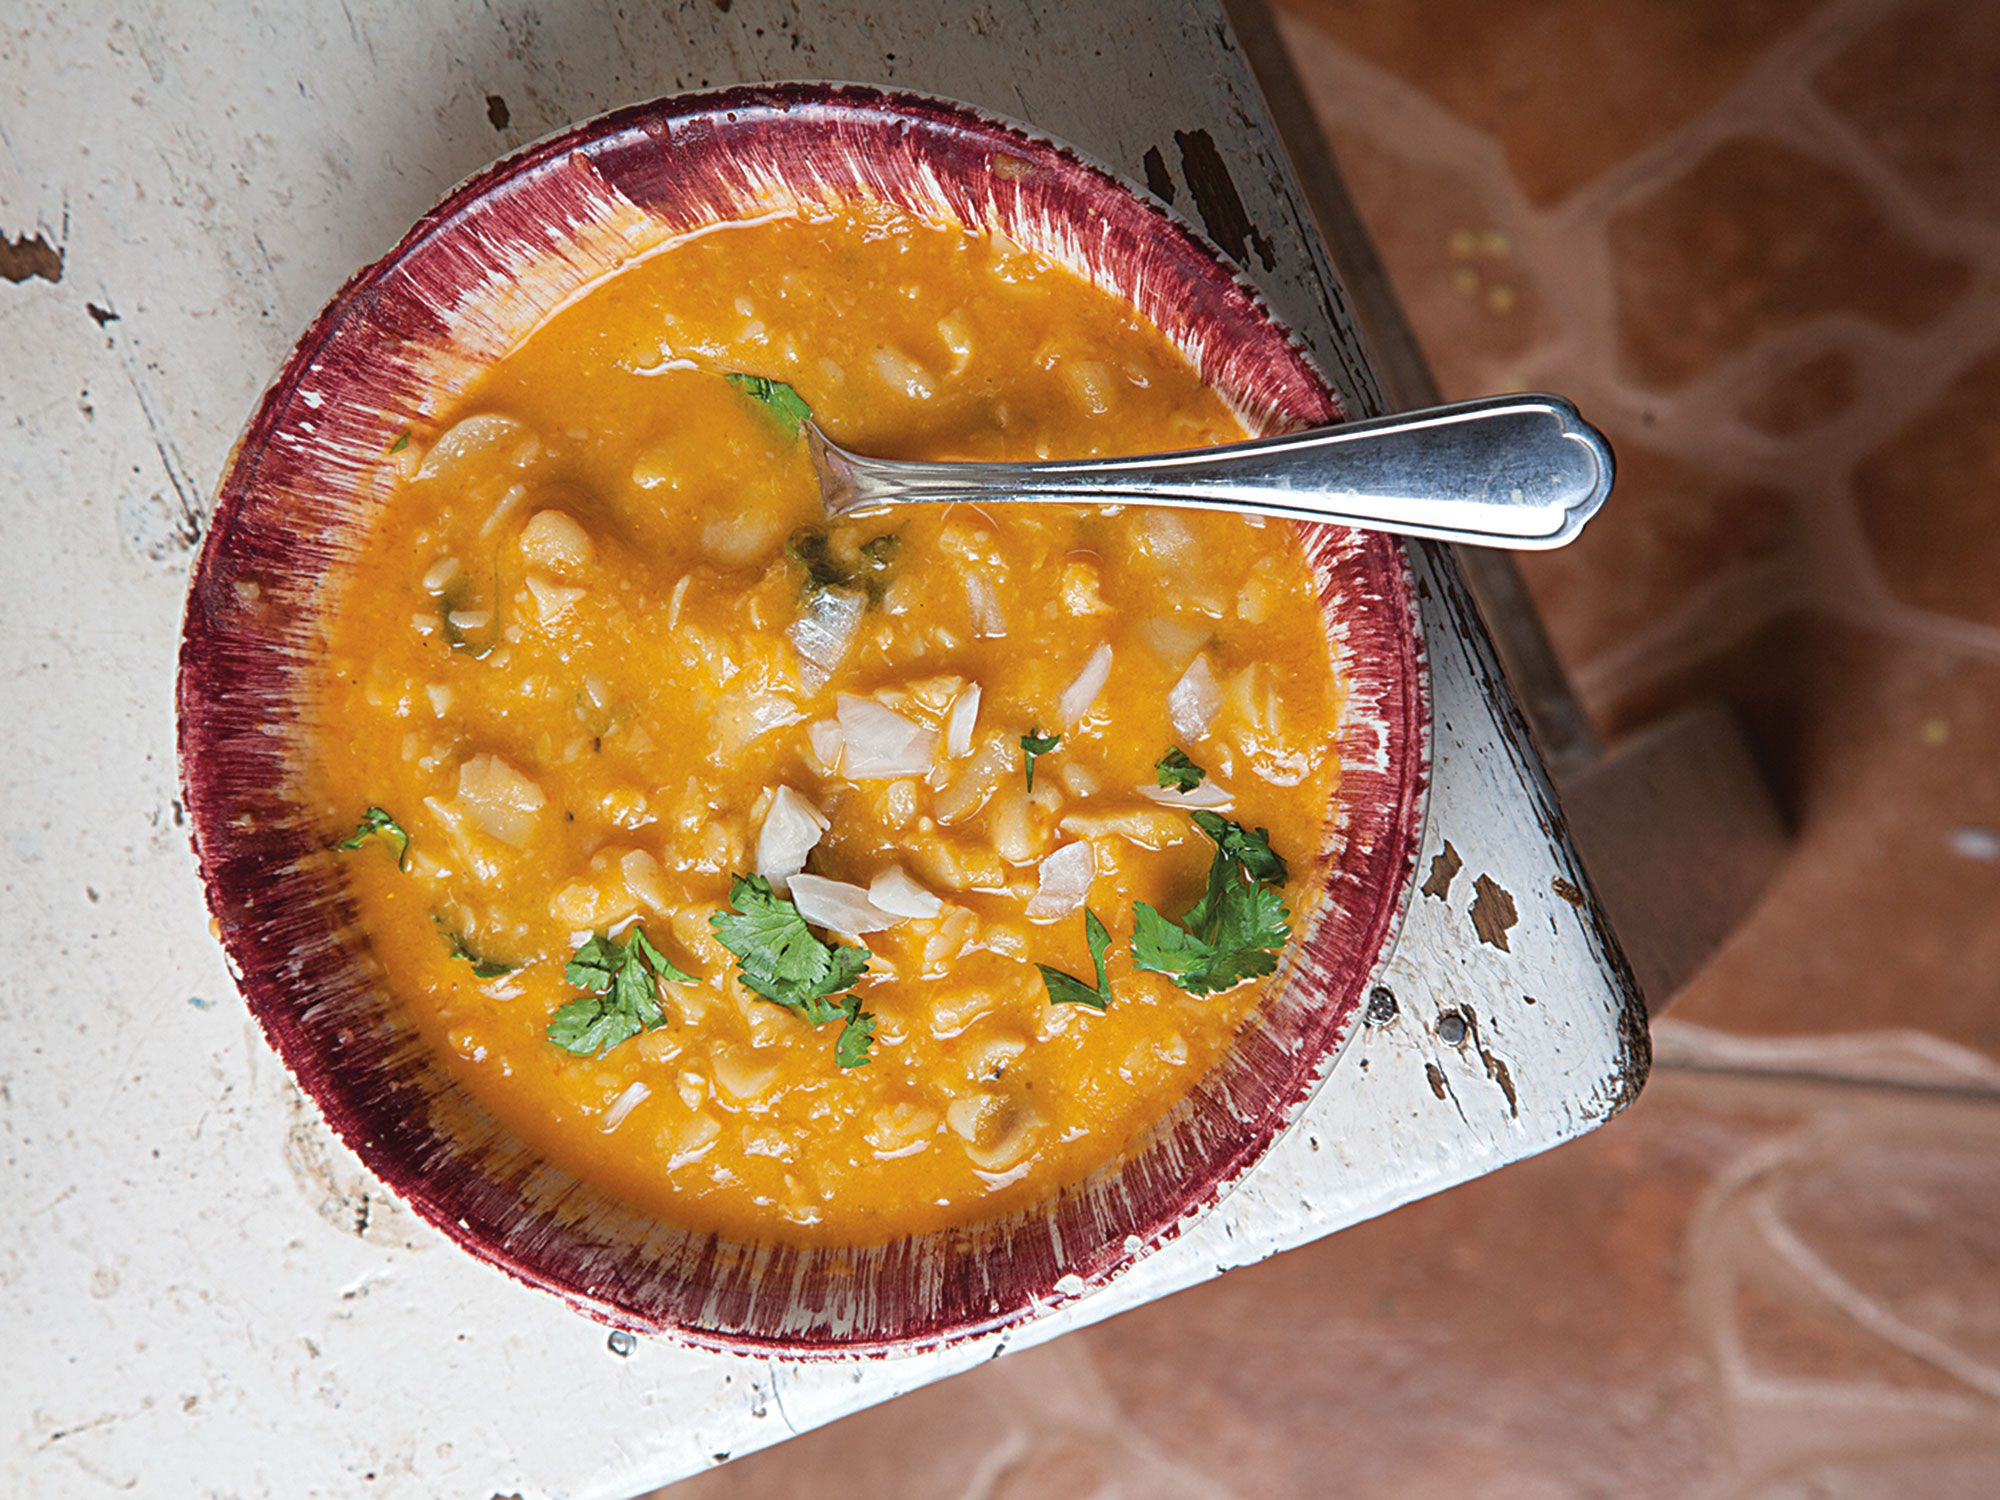 "The secret to this soup is a flavorful aromatic base of tomatoes, garlic, and onions—called a recado—that is pureed and fried before the beans go into the pot. Get the recipe for <a href=""https://www.saveur.com/article/Recipes/Sopa-de-Habas-Fava-Bean-Soup/"">Mexican Fava Bean Soup (Sopa de Habas)</a>"